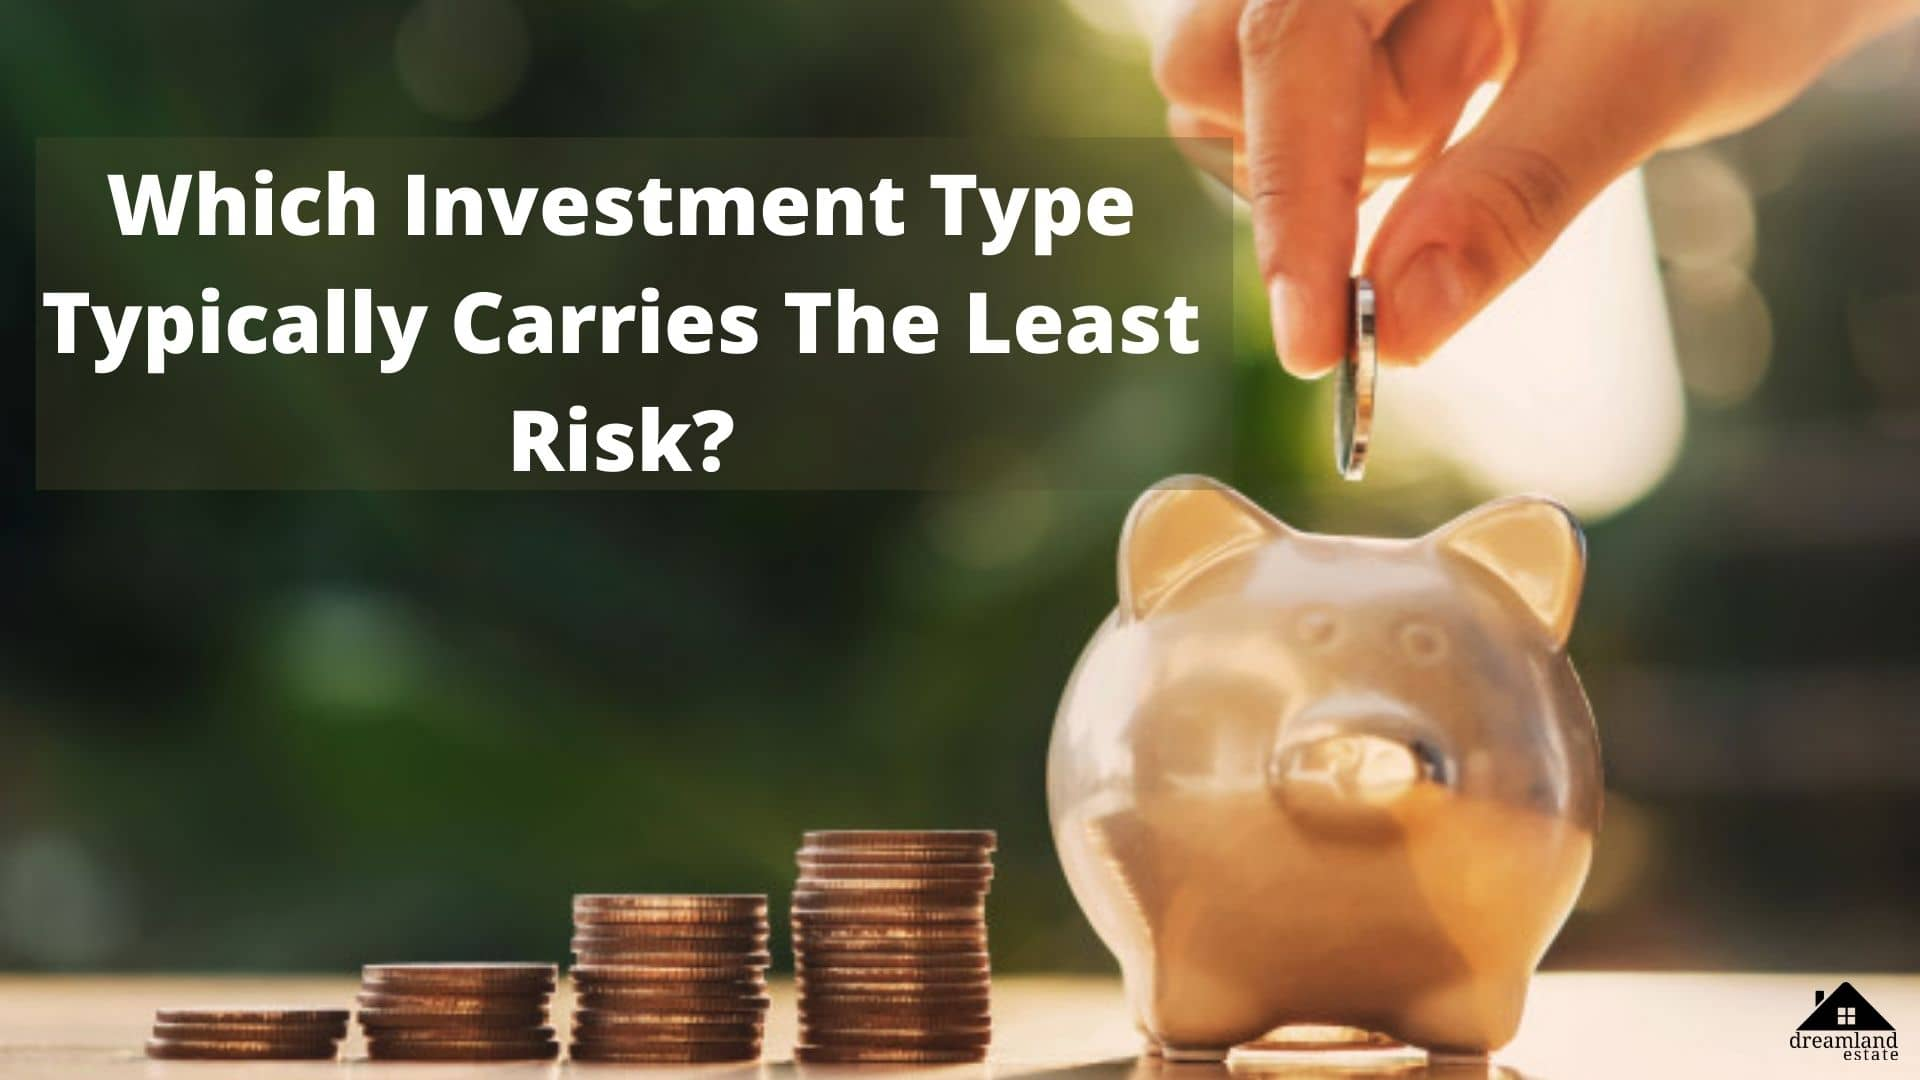 Which Investment Type Typically Carries The Least Risks